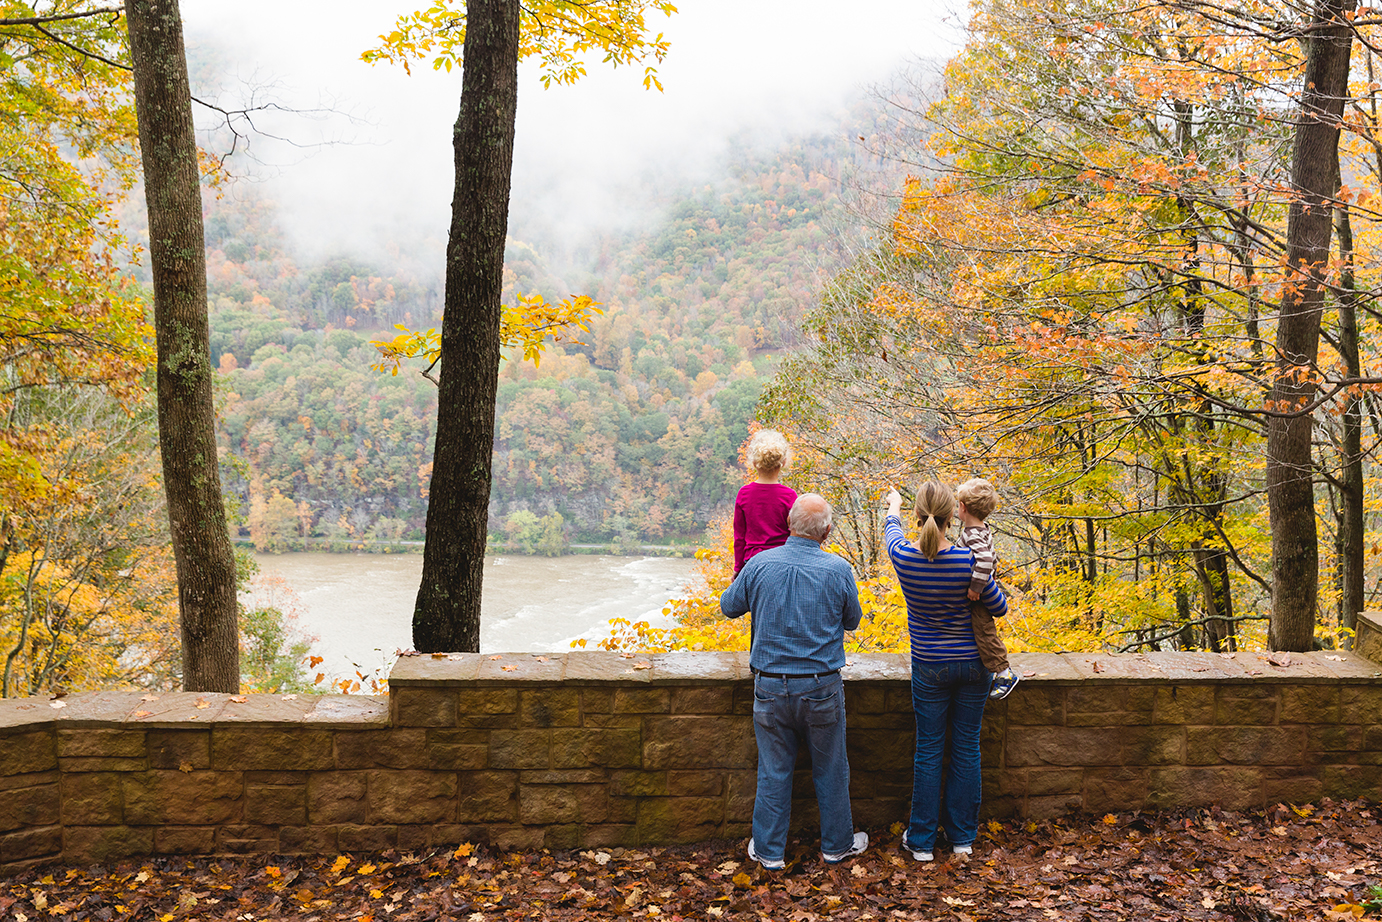 Enjoying fall with family New River Gorge National River